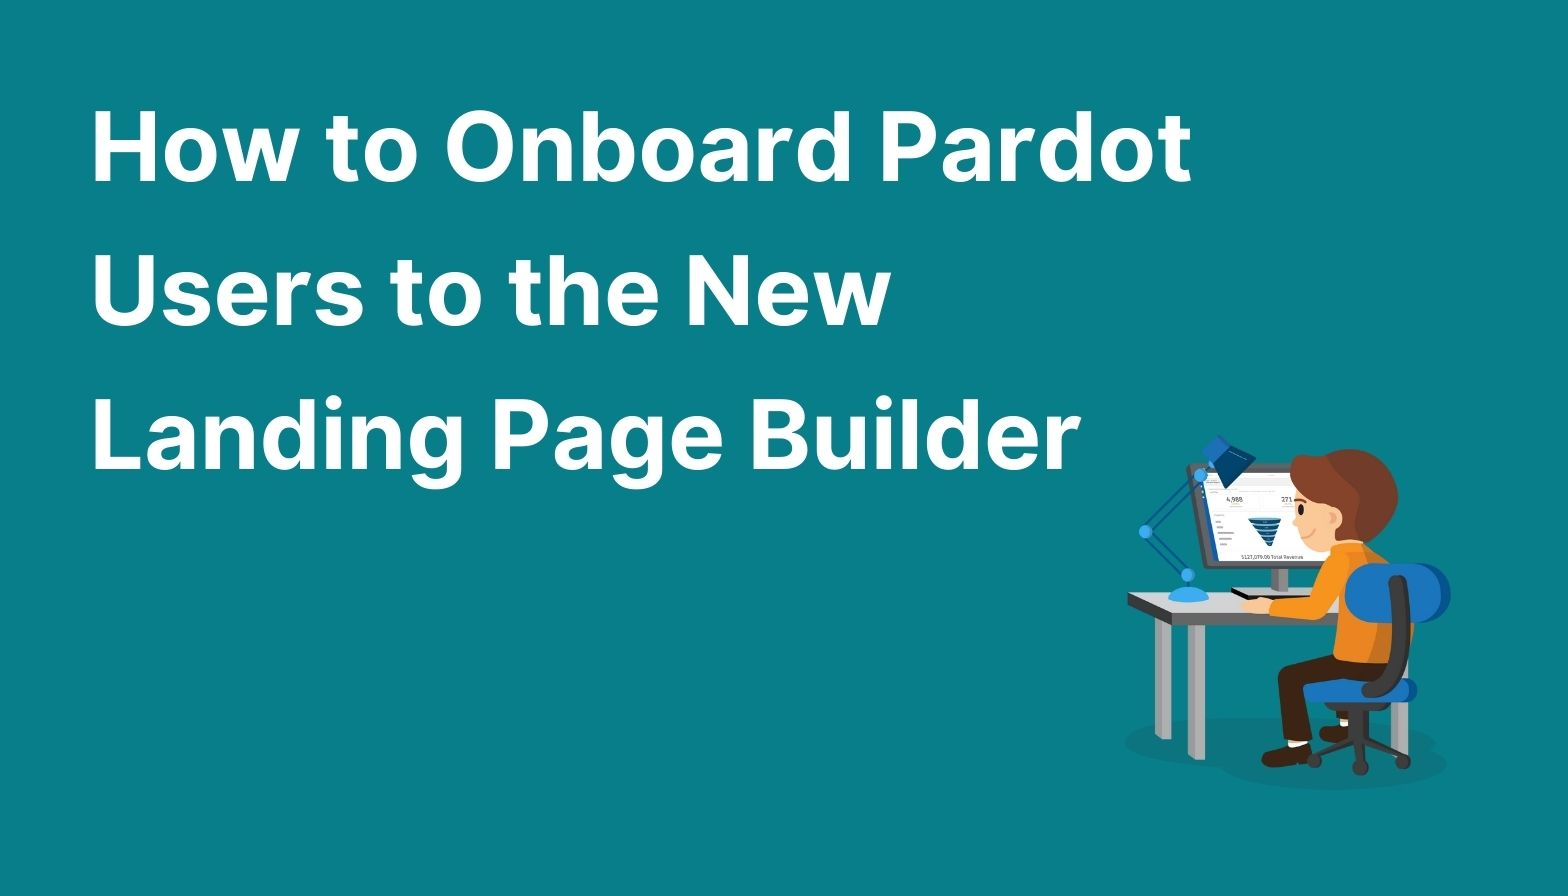 How to onboard Pardot users to the new landing page builder